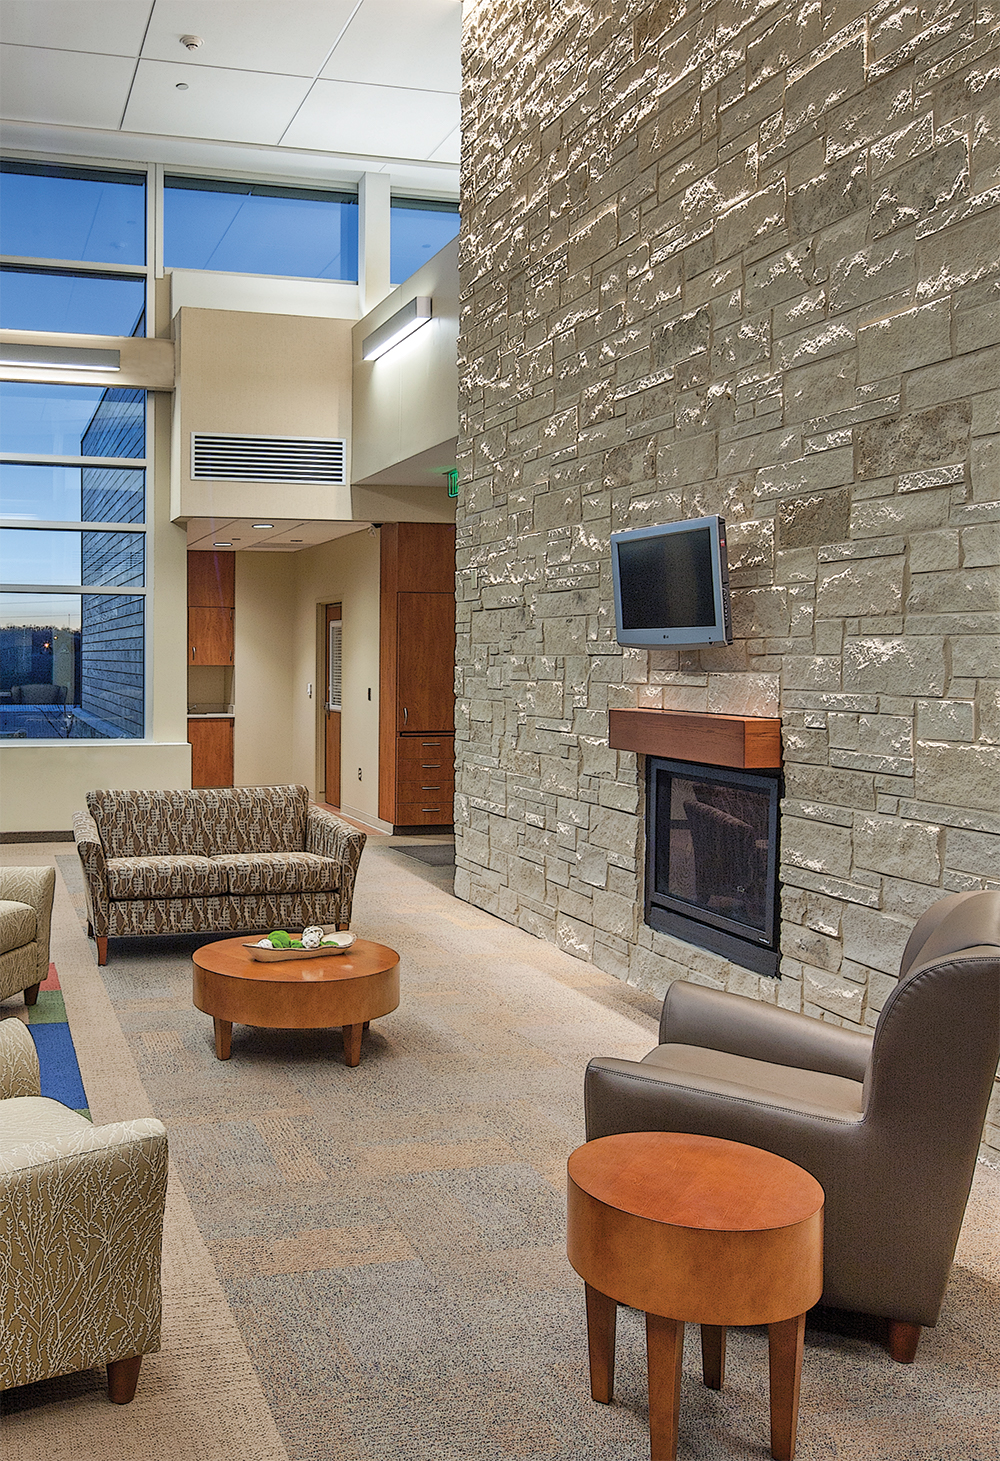 Linear Art Sconce is perfect for healthcare design applications, seen here above a hospital waiting area.